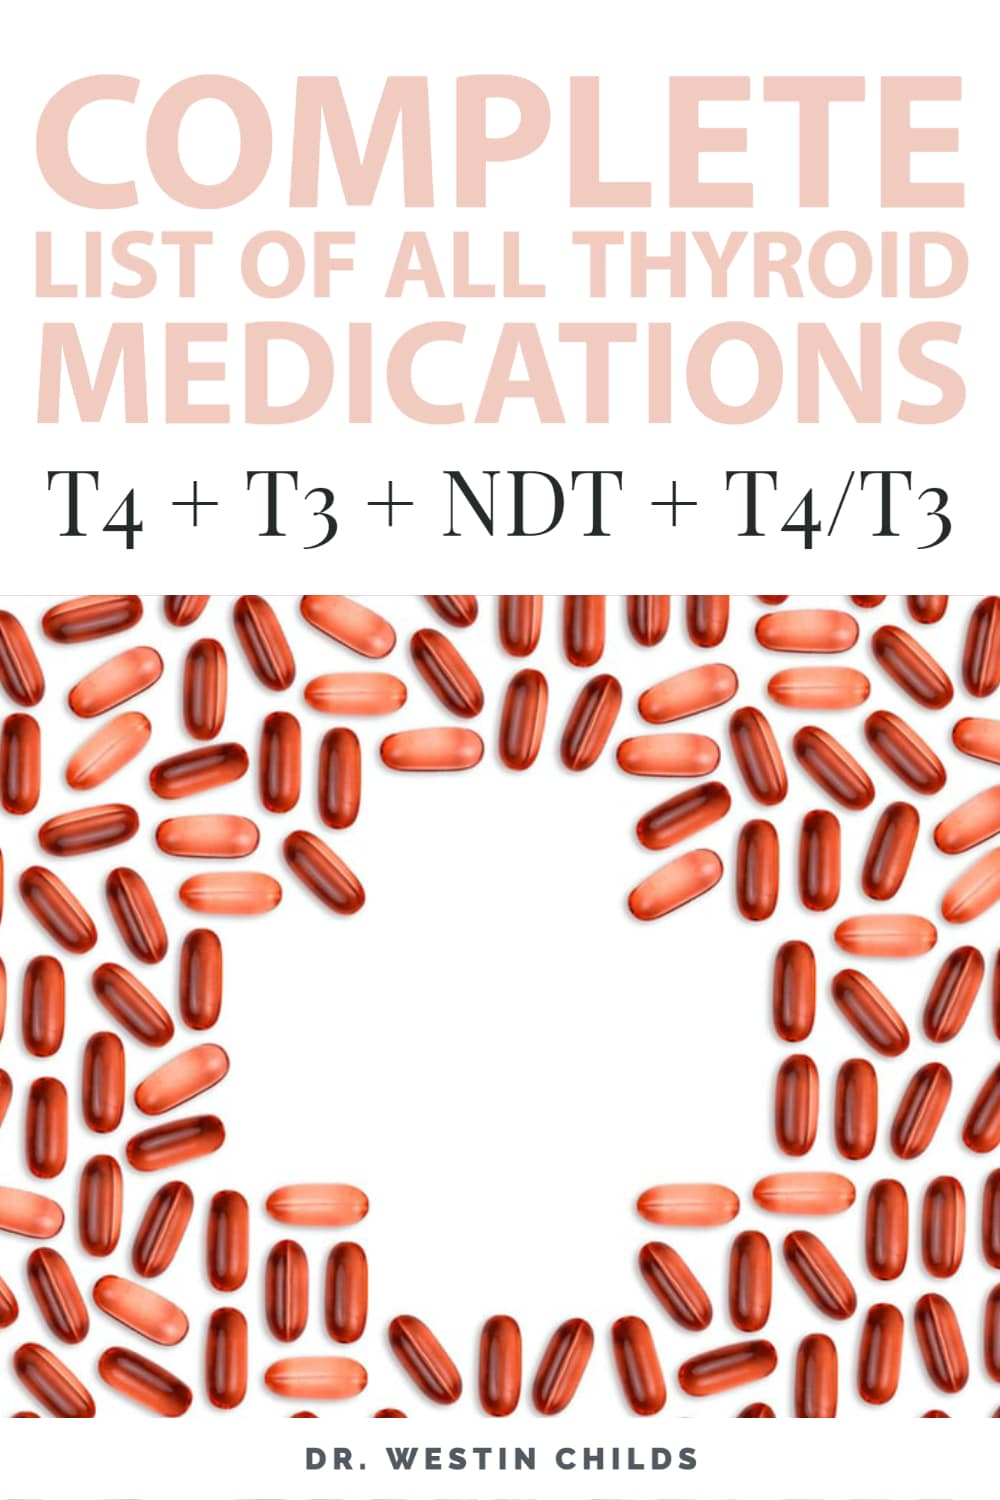 complete list of all thyroid medications